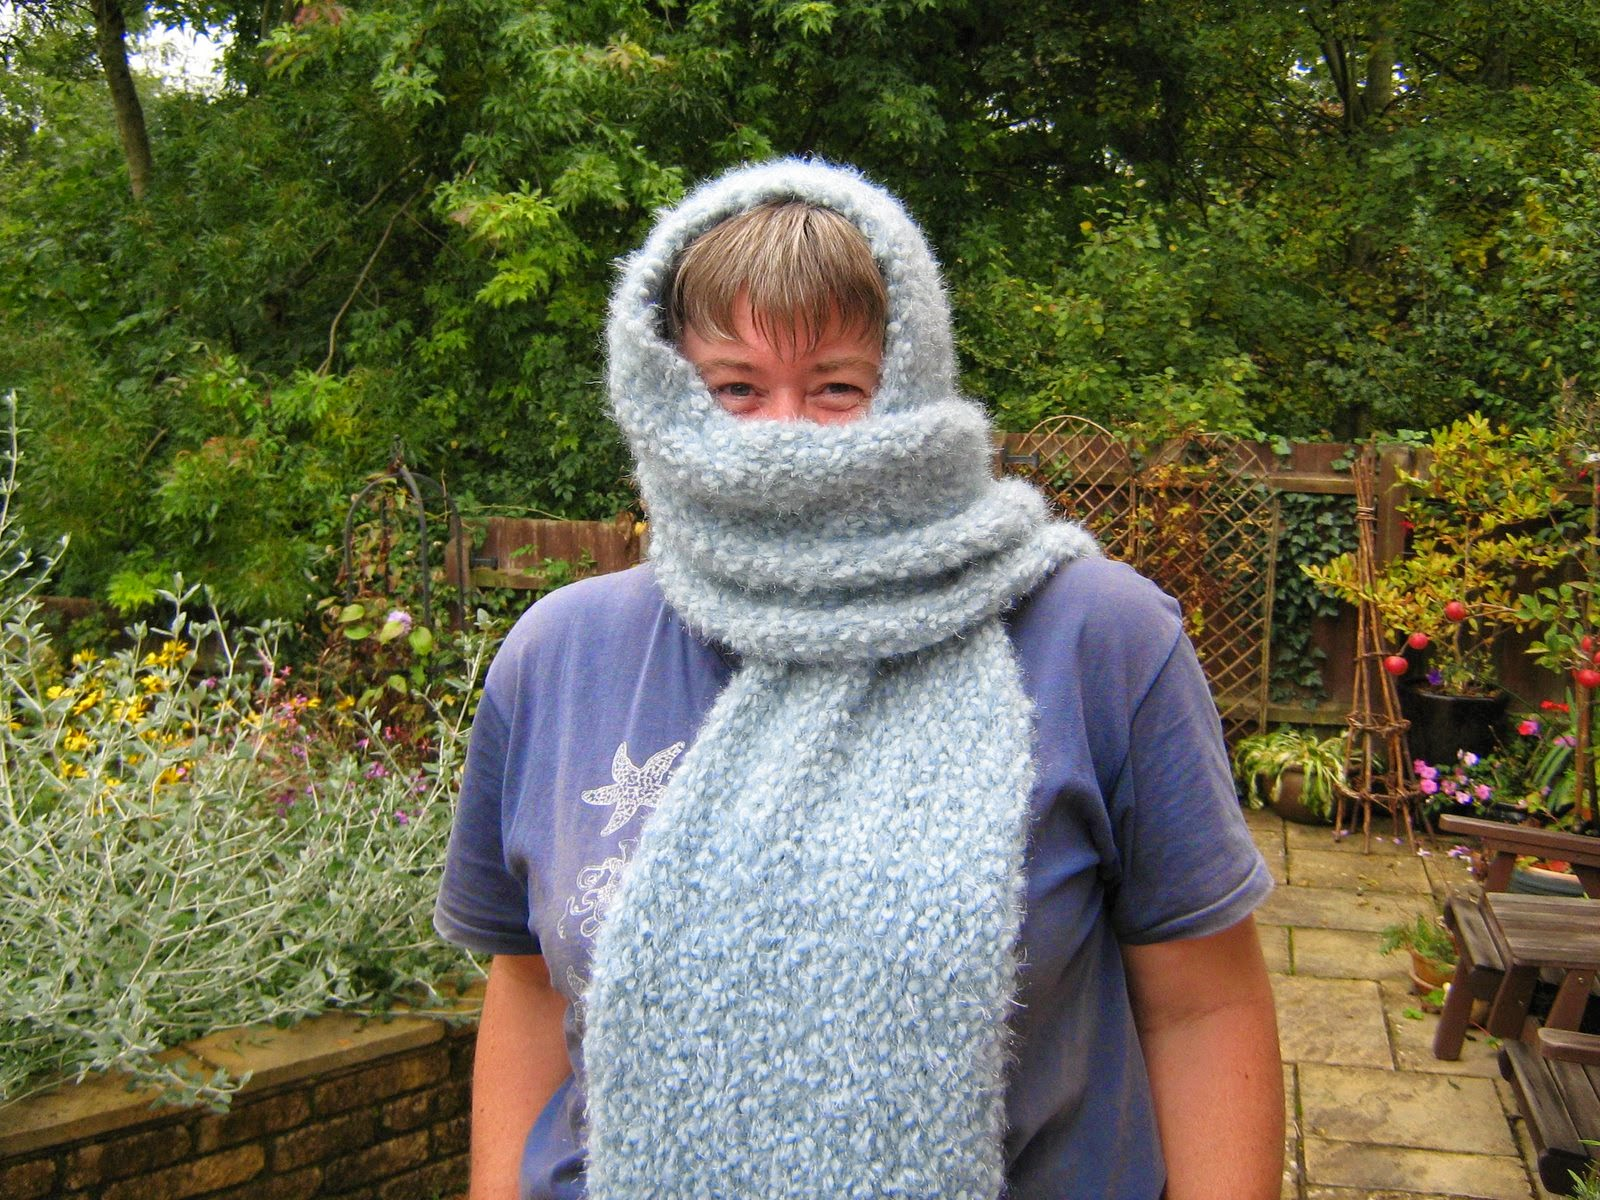 me in my garden wearing a scarf I'd knitted